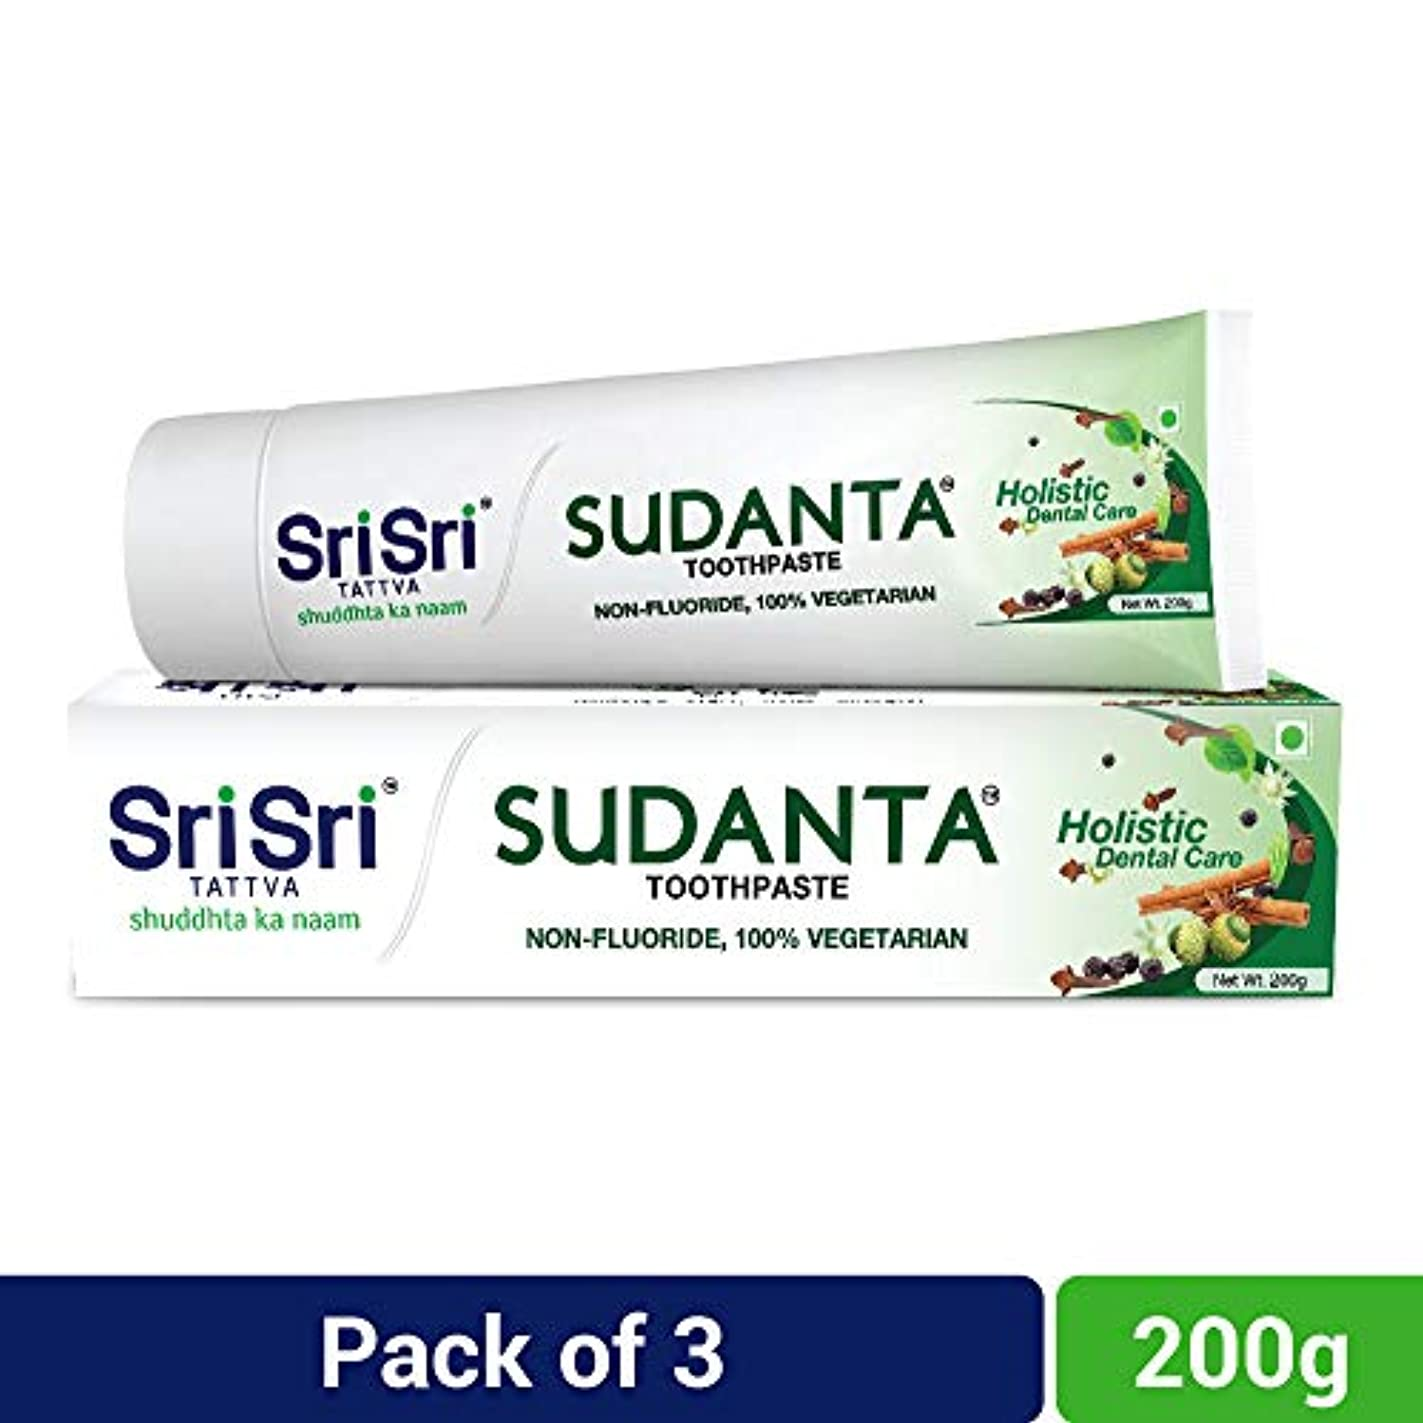 Sri Sri Tattva Sudanta Toothpaste, 600gm (200gm x Pack of 3)